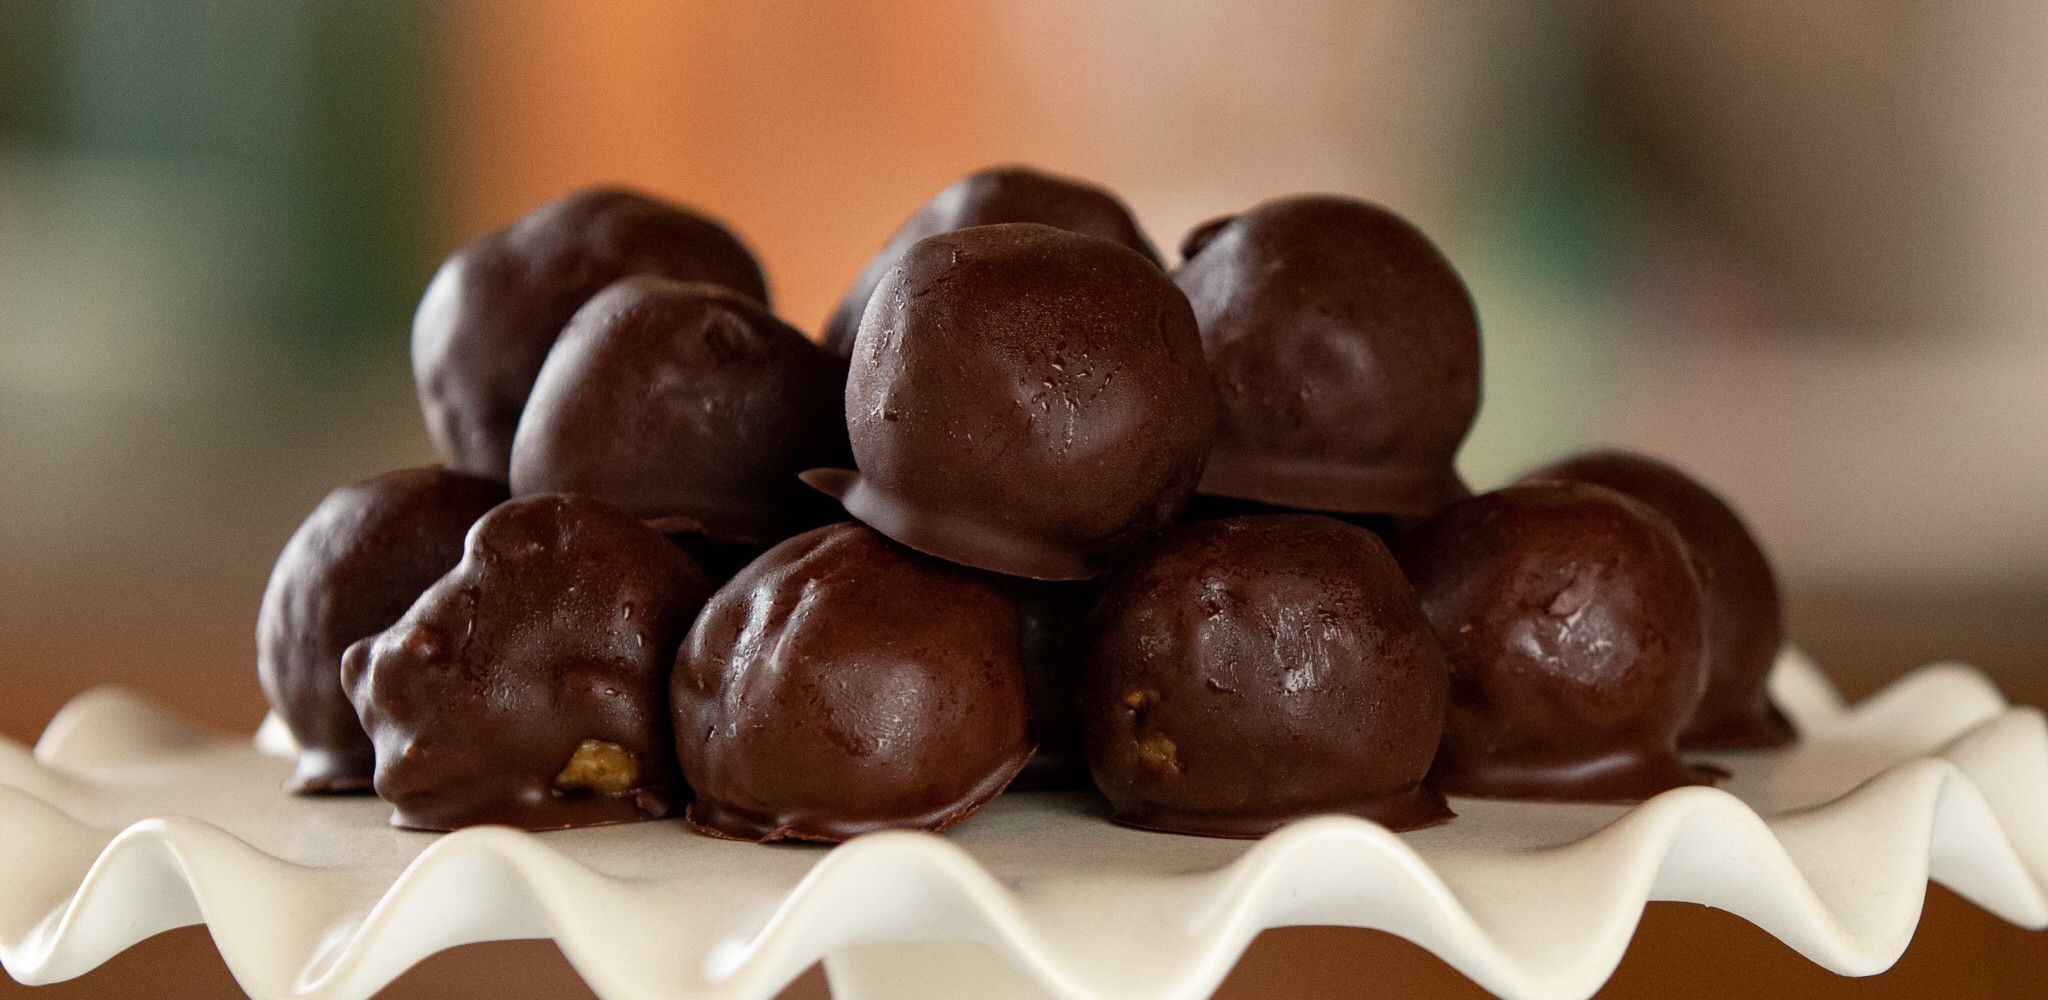 Peanut Butter Cup Bites by Ree Drummond in 2020 (With